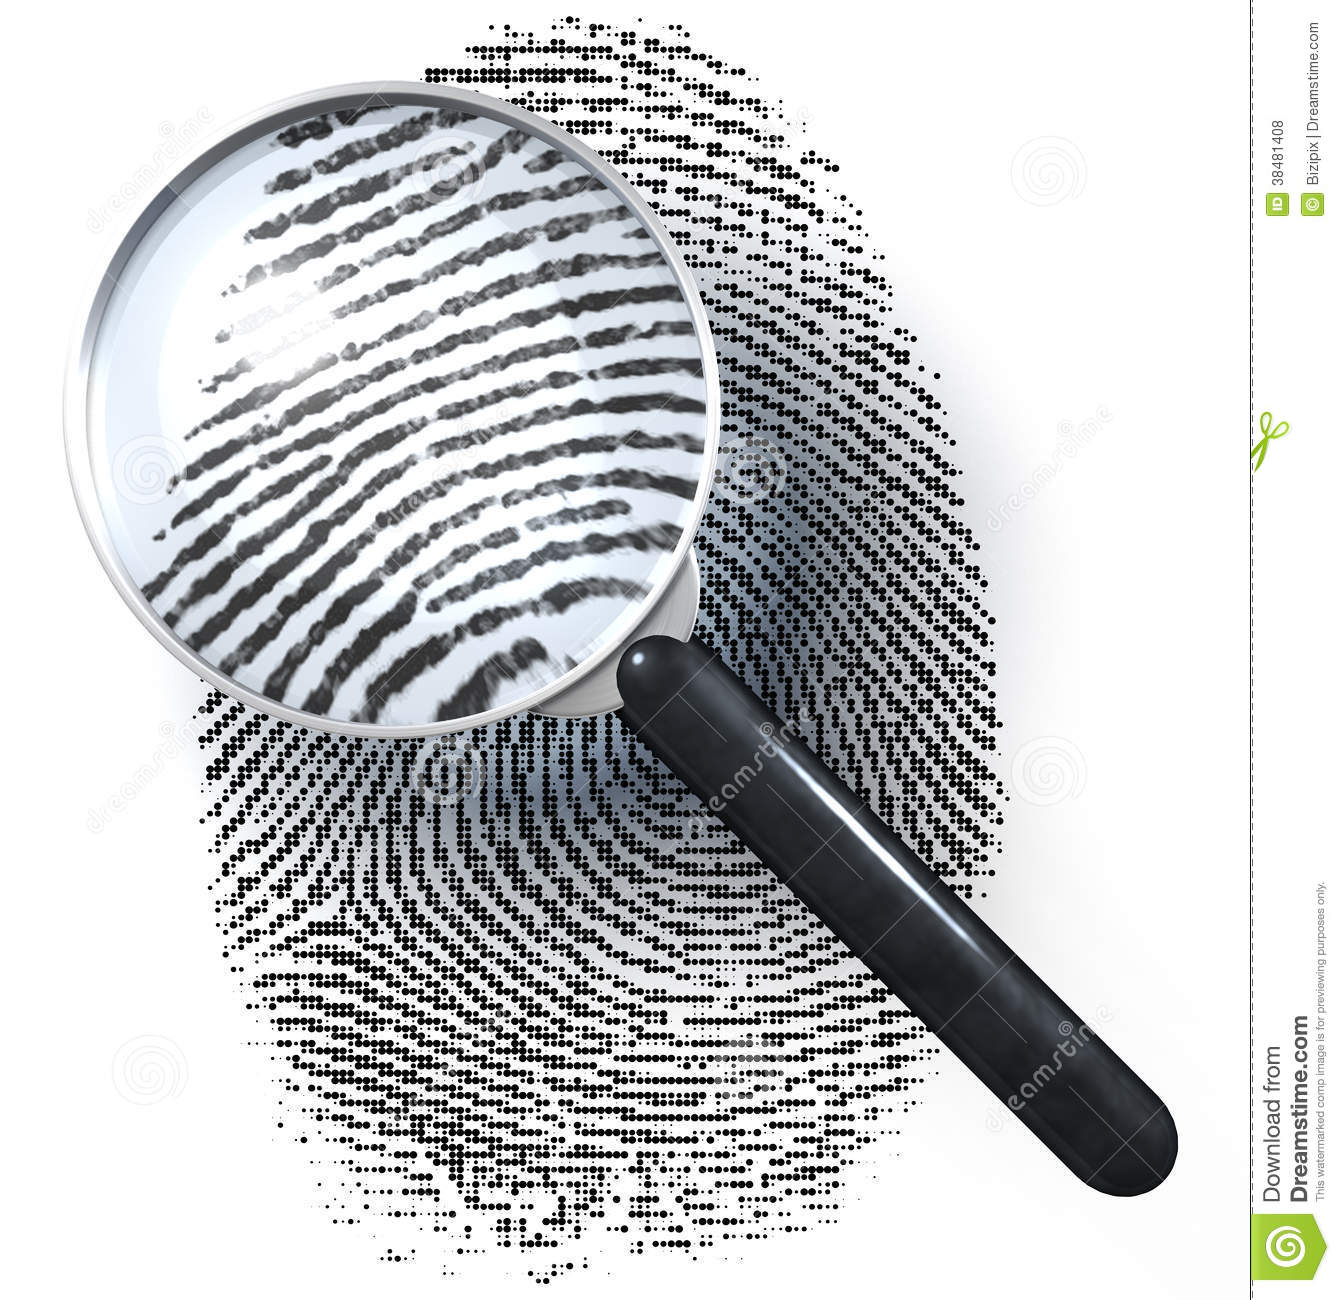 Royalty free stock photos magnifying glass over dot grid fingerprint